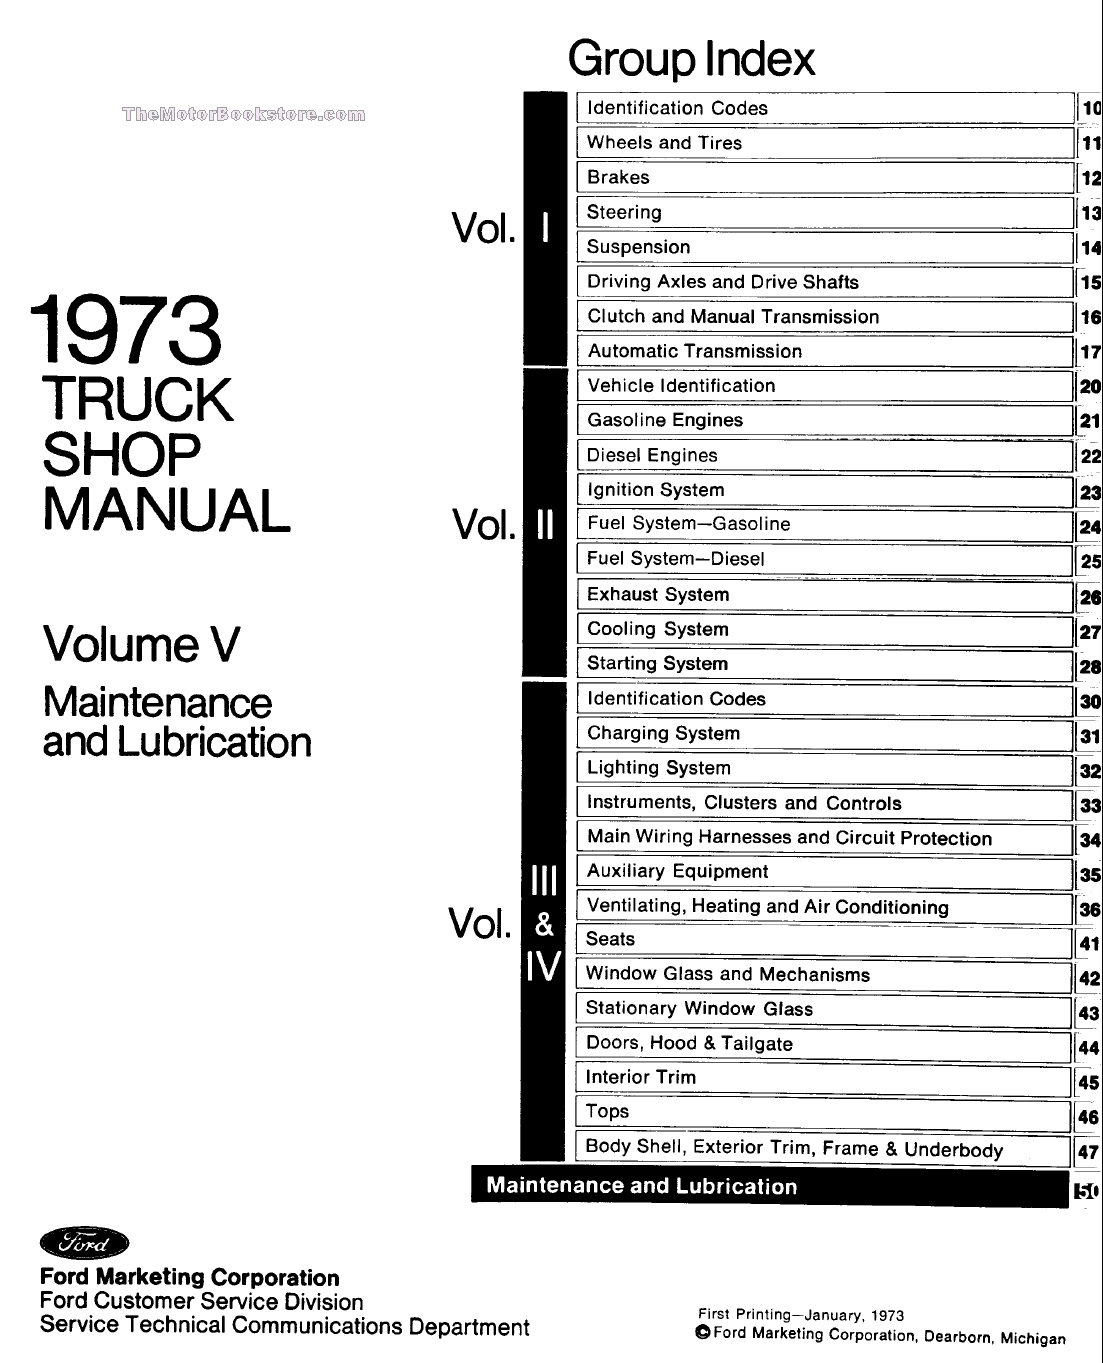 Ford Factory Wiring Harness Manual Transmission Schematics Aod 1973 Truck Shop F Series Bronco Econoline E4od Diagram